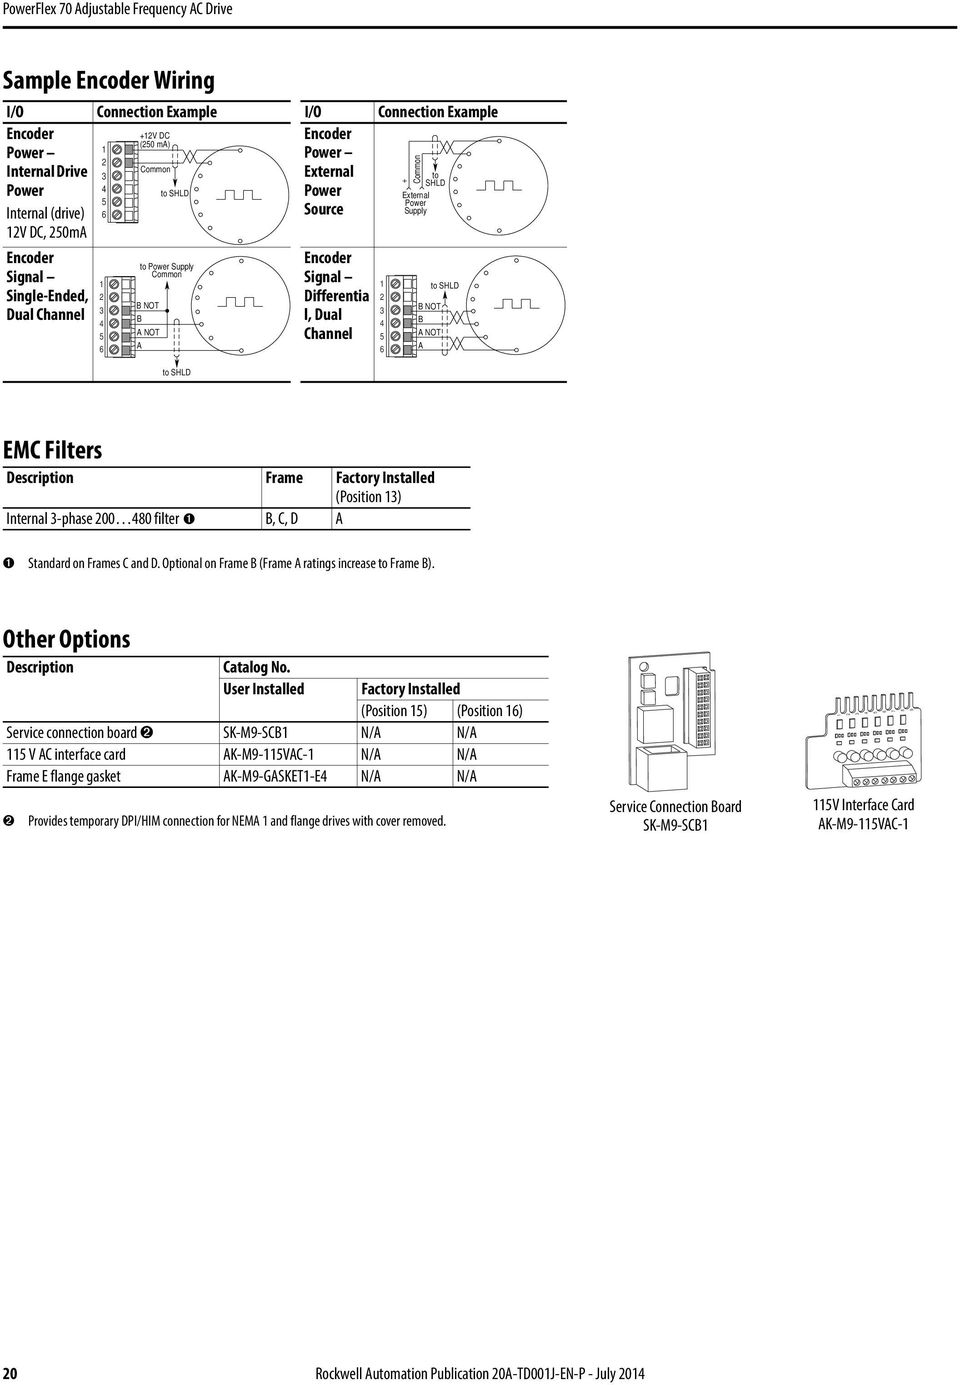 powerflex 755 wiring manual powerflex 70 wiring